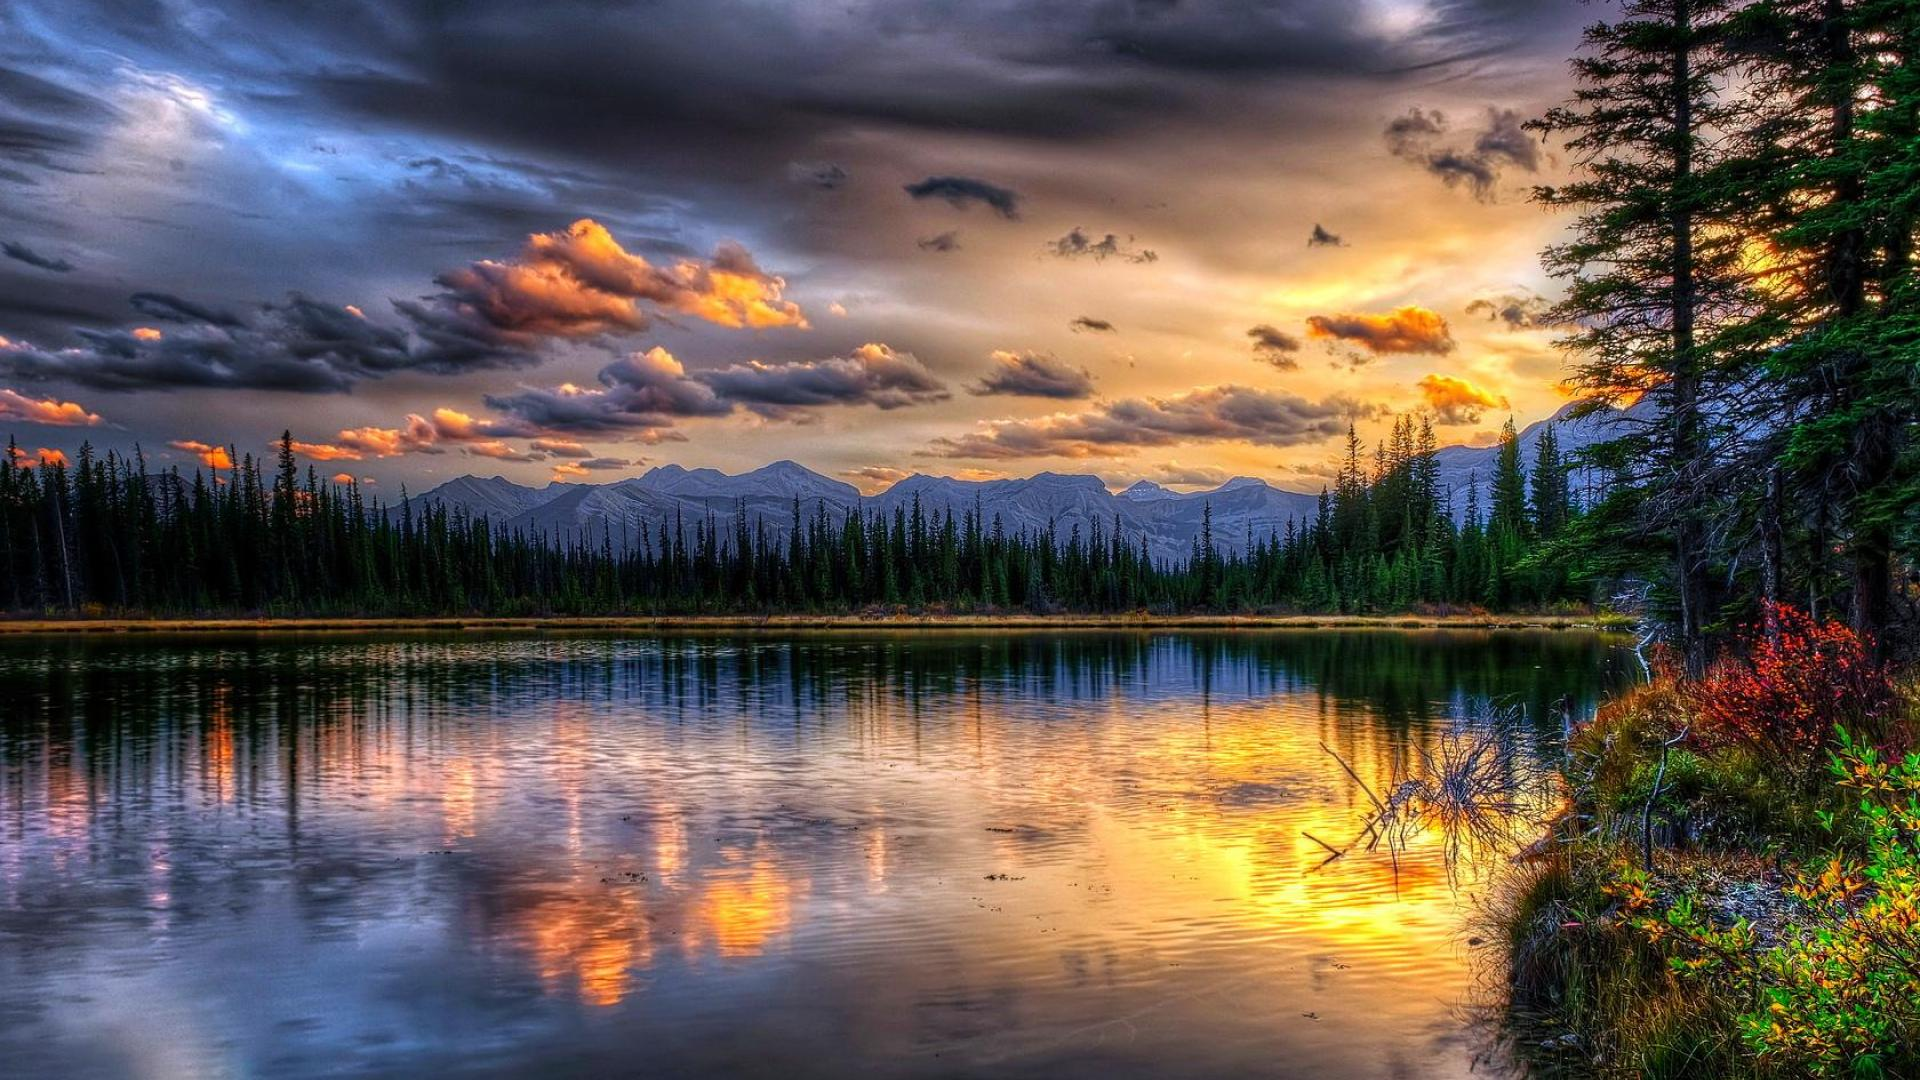 Beautiful Landscape Wallpaper